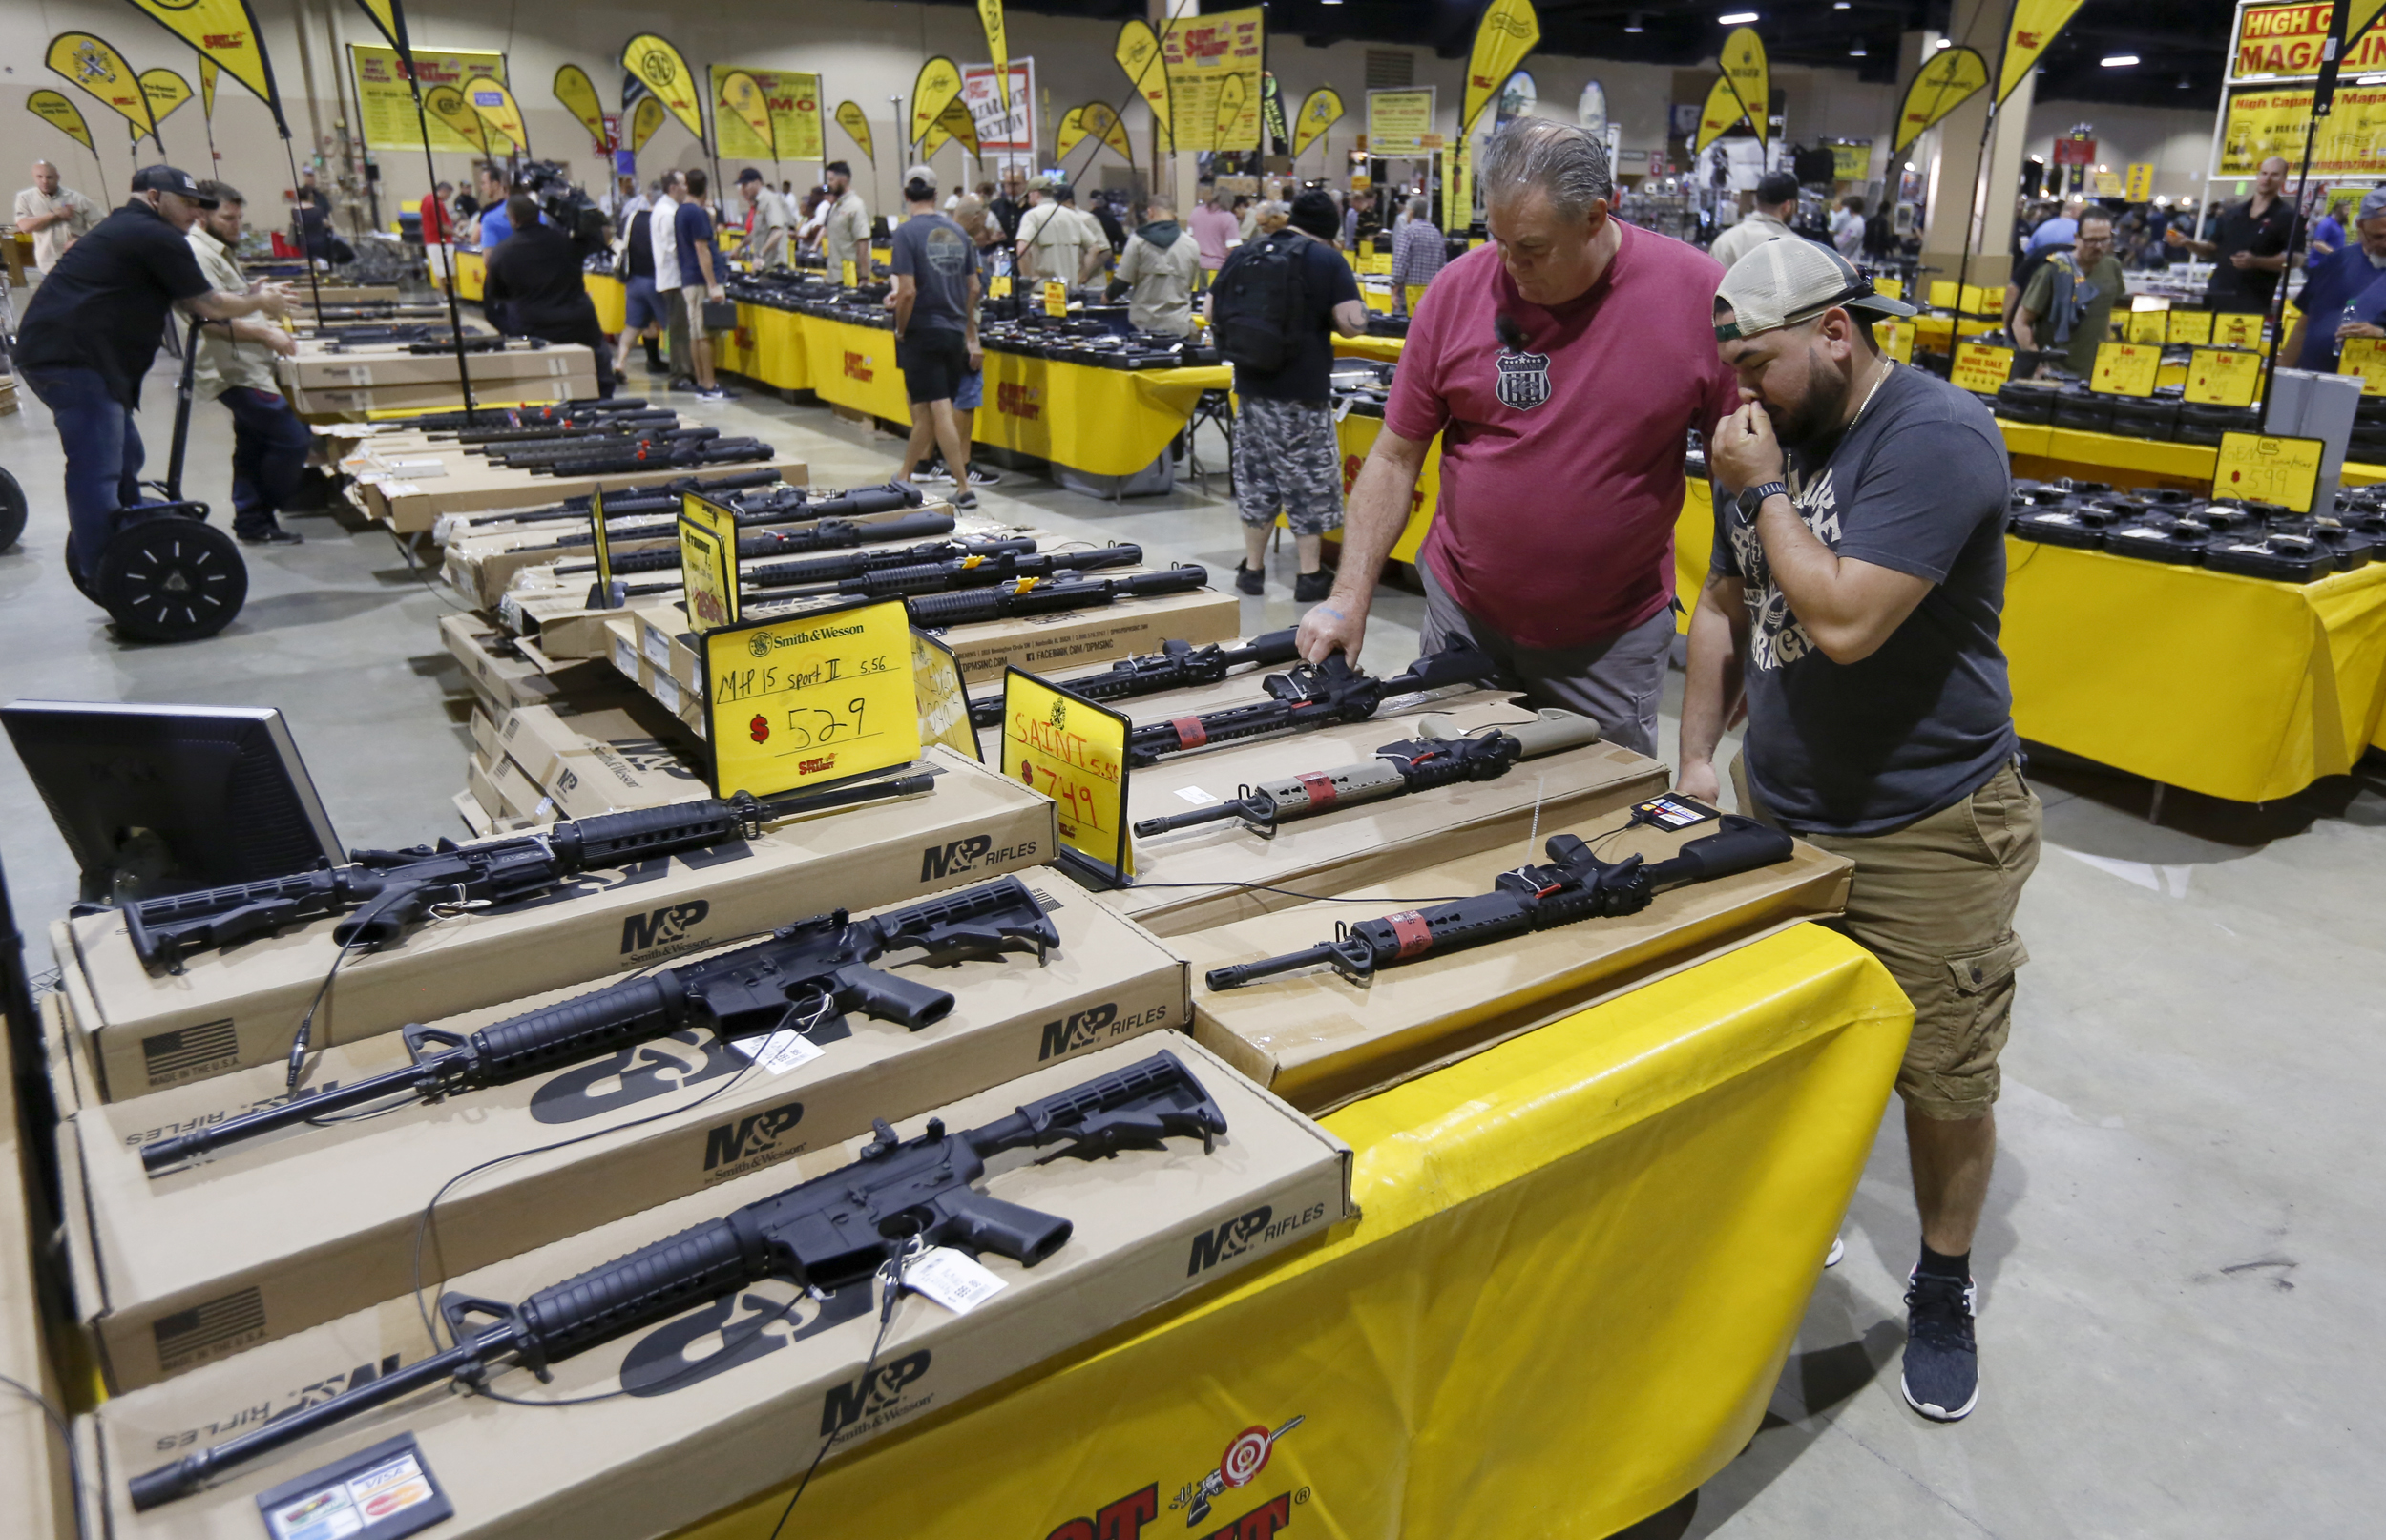 After Parkland shooting, hundreds attend nearby gun show